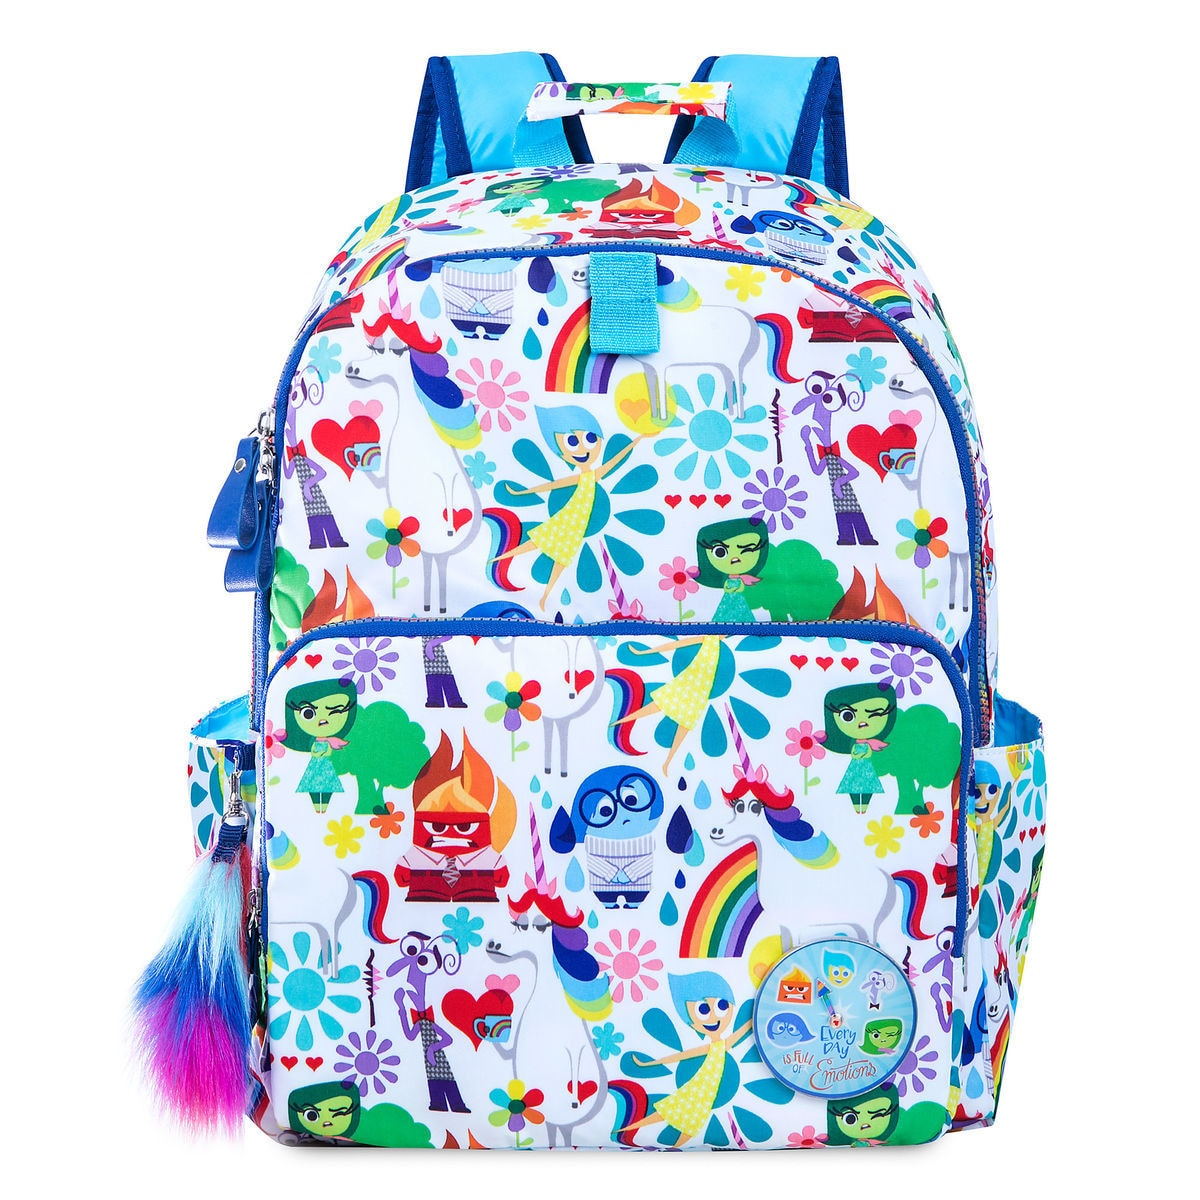 b202bcae23f Product Image of Inside Out Backpack - Personalizable   1